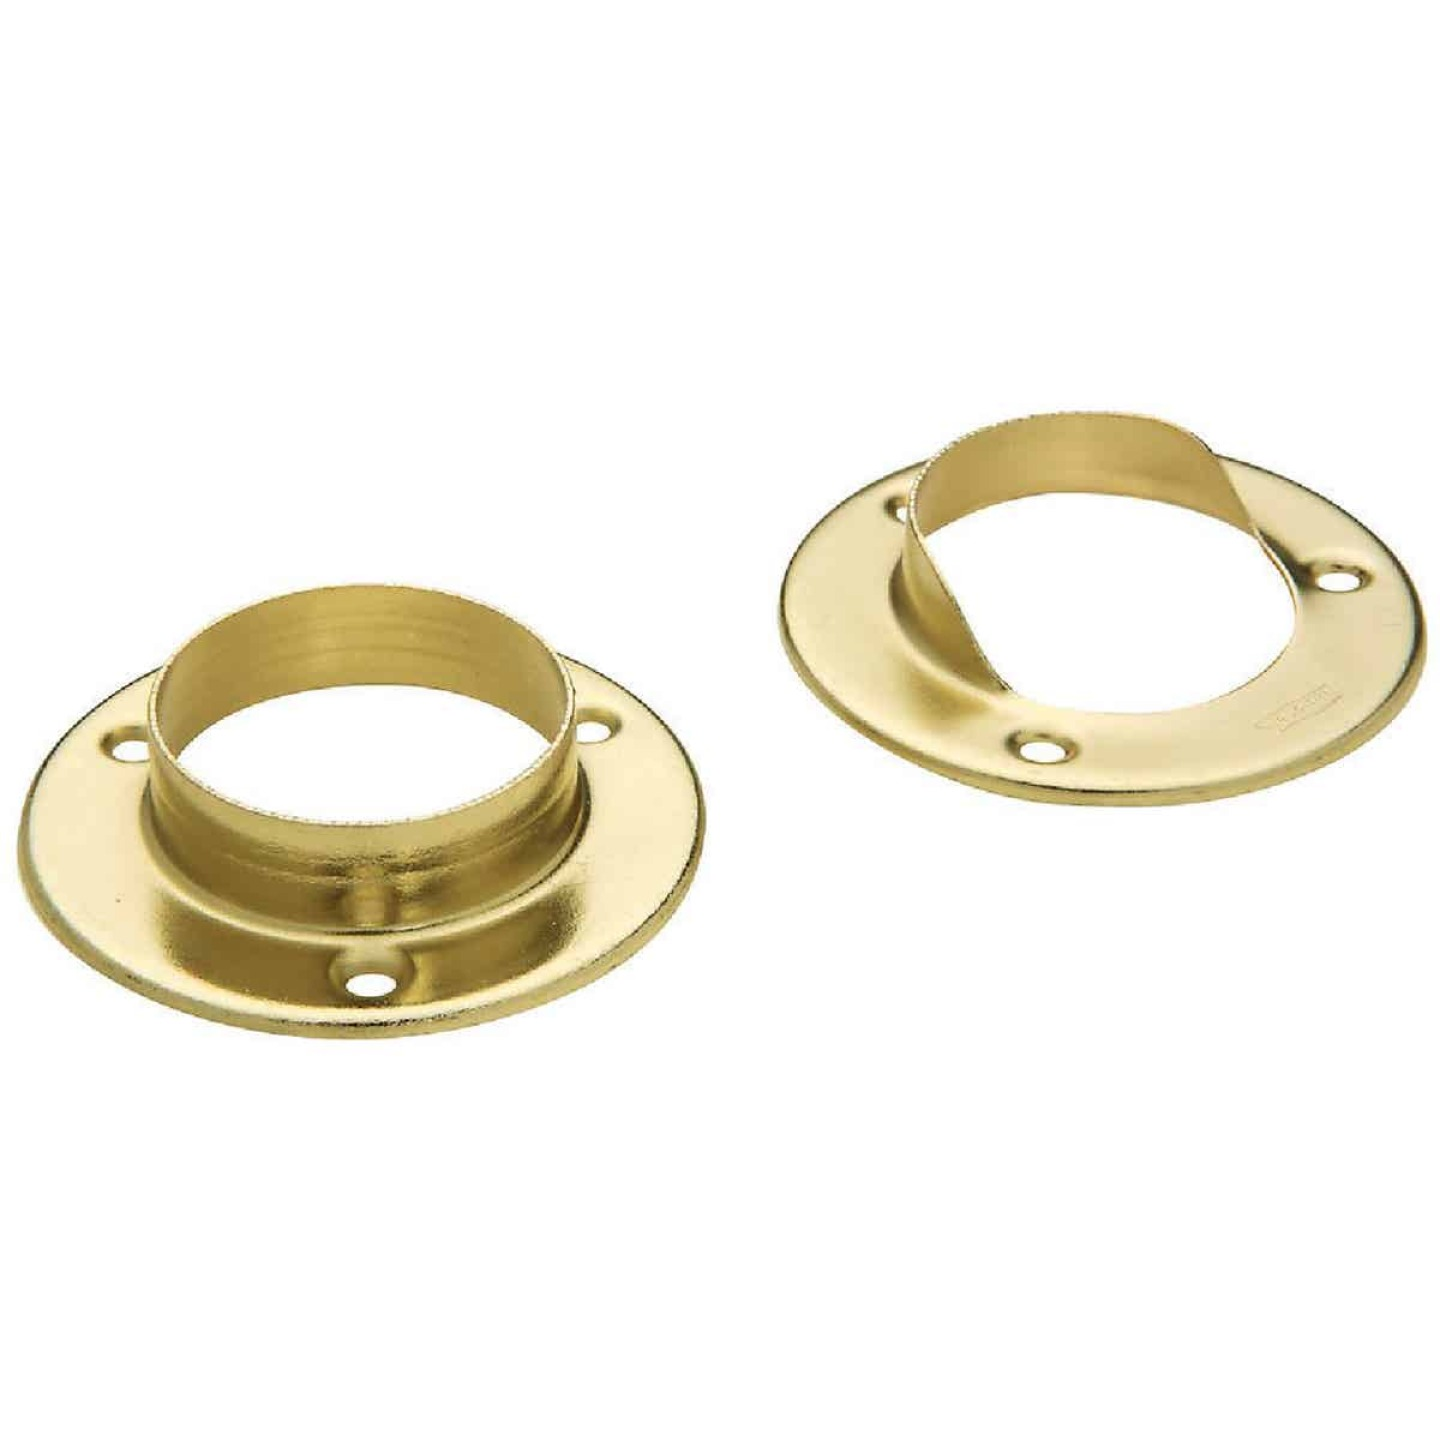 National 1-3/8 In. Steel Closet Rod Socket, Satin Brass (2-Pack) Image 1